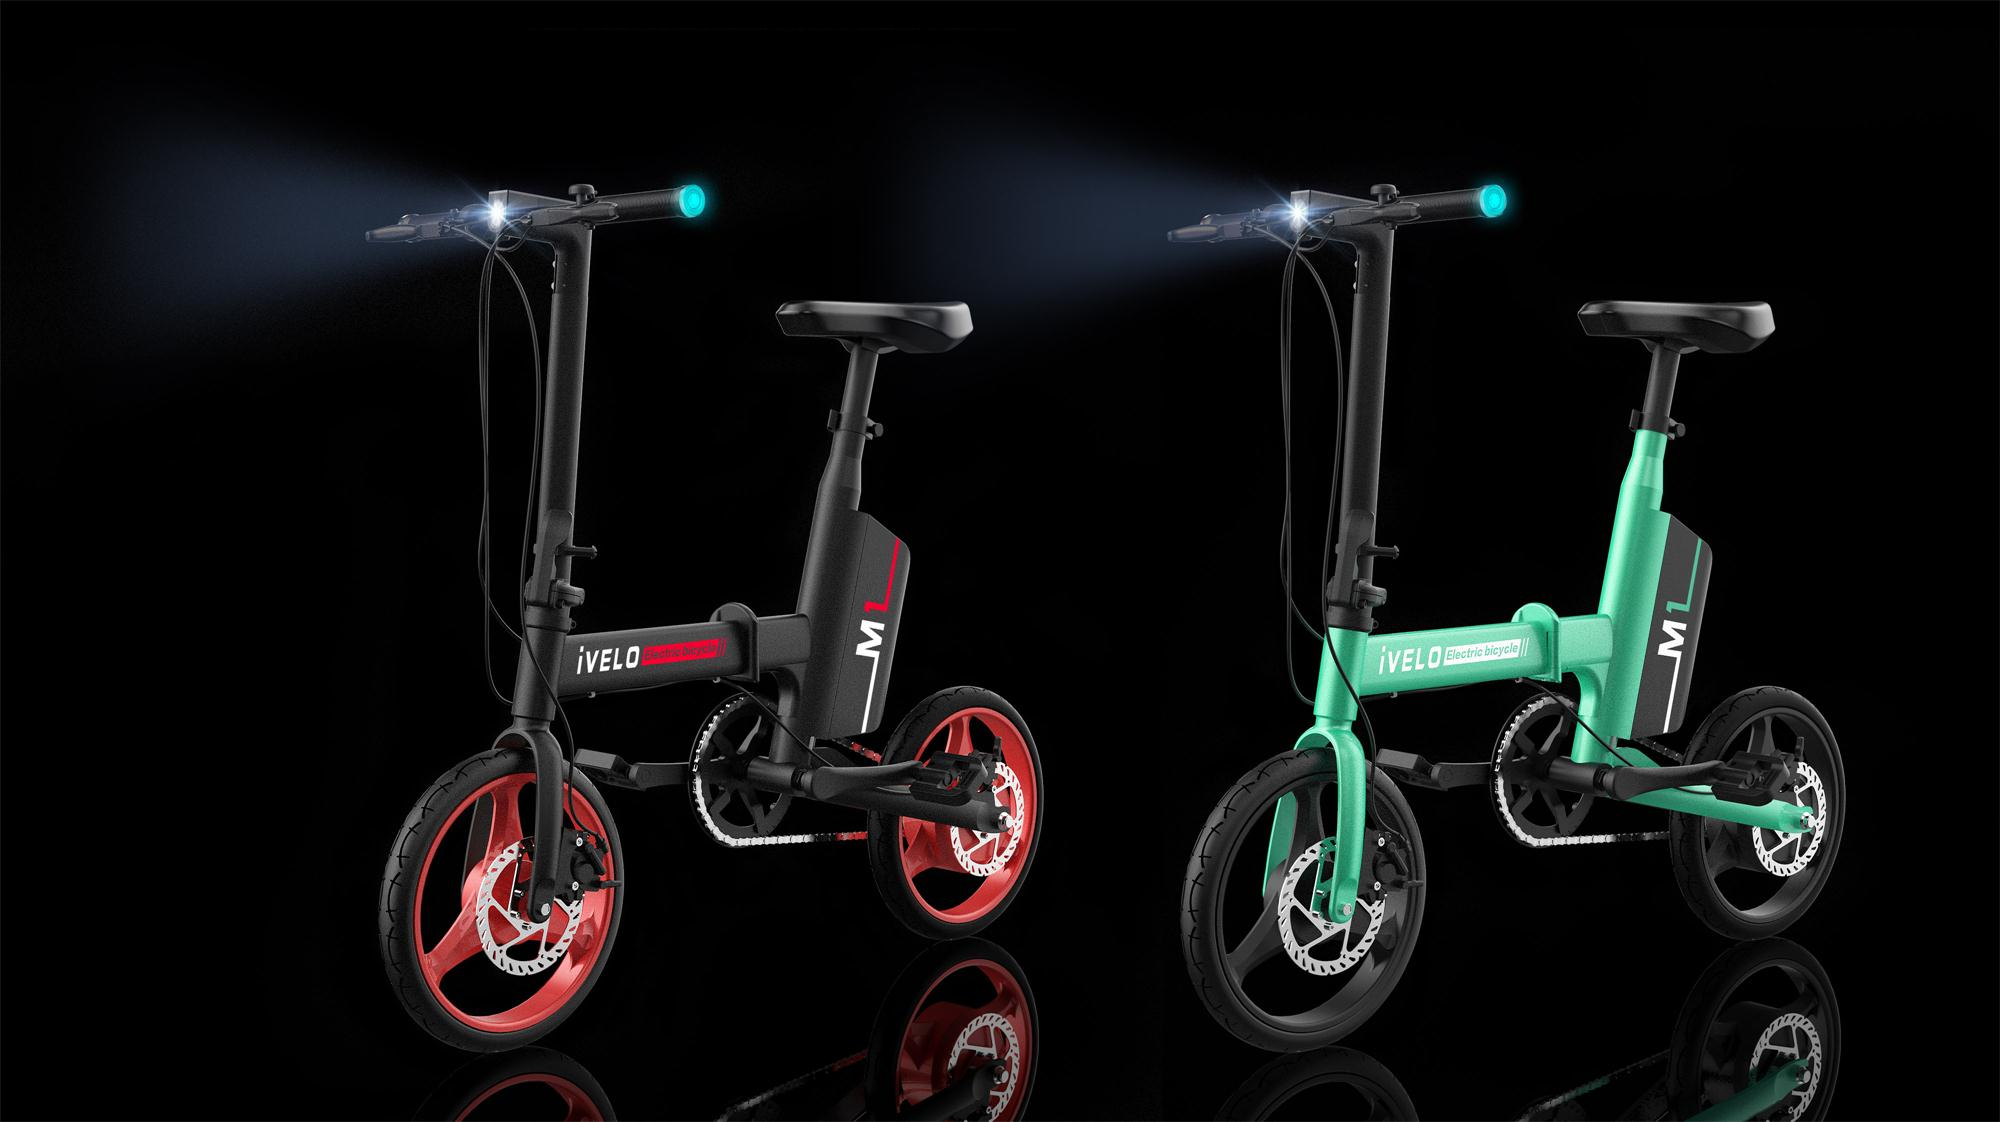 ivelo electric bike scooter velo electrique bicycle small electric car new products hangzhou. Black Bedroom Furniture Sets. Home Design Ideas